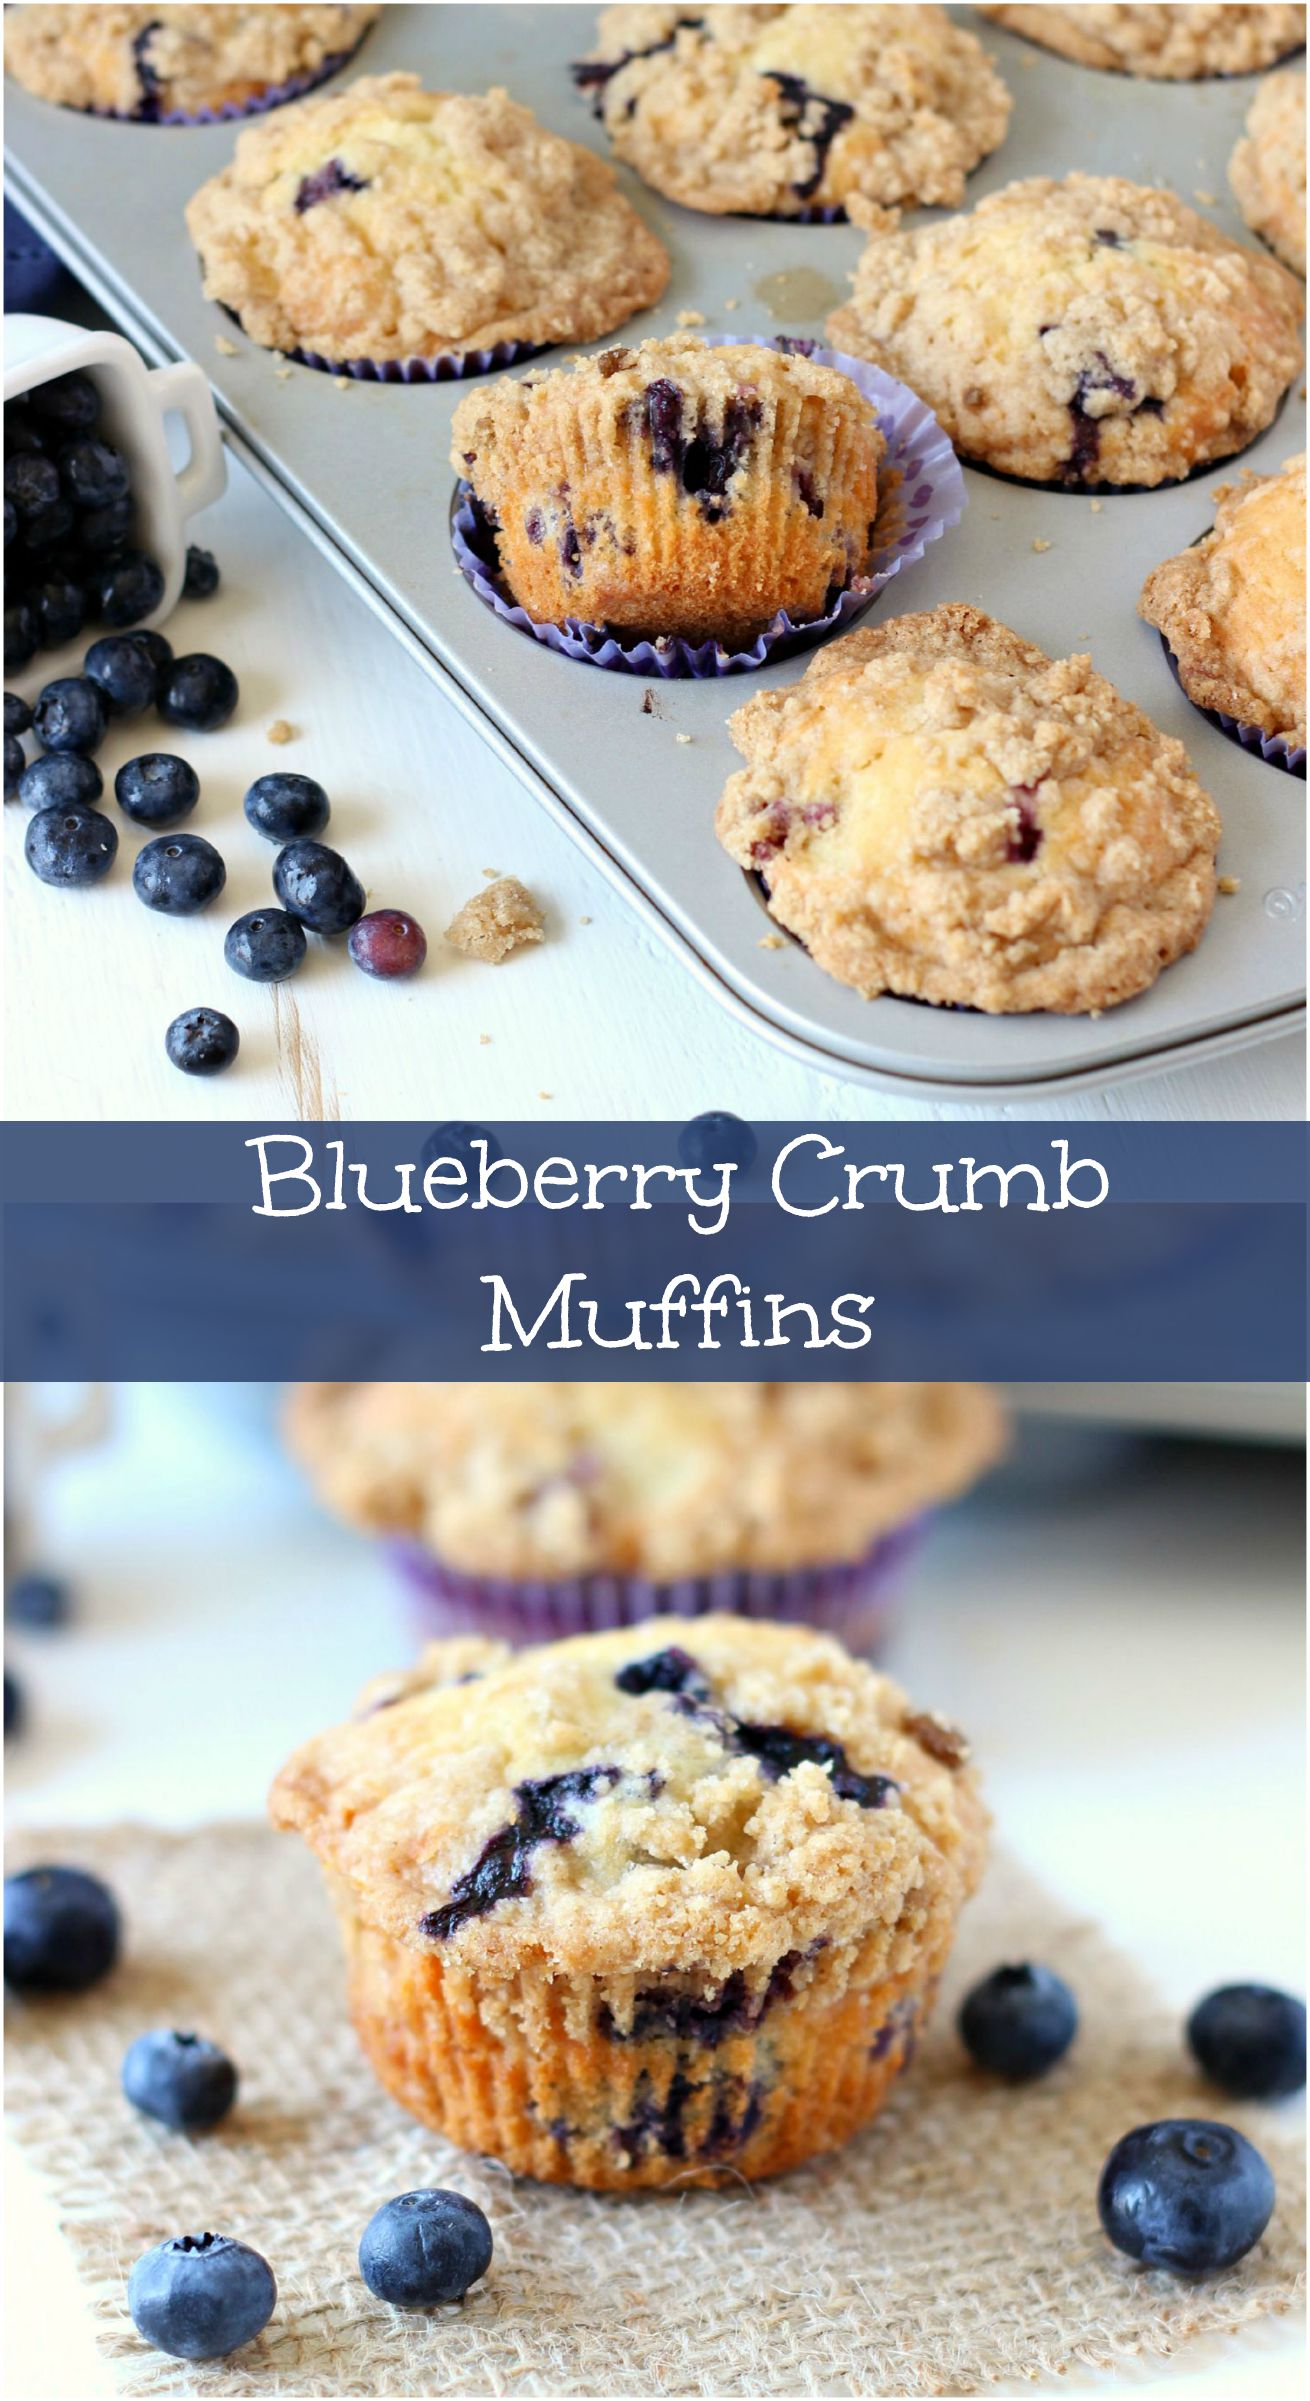 Blueberry Crumb Muffins ~ mykitchencraze.com ~ Muffins are perfect for ...